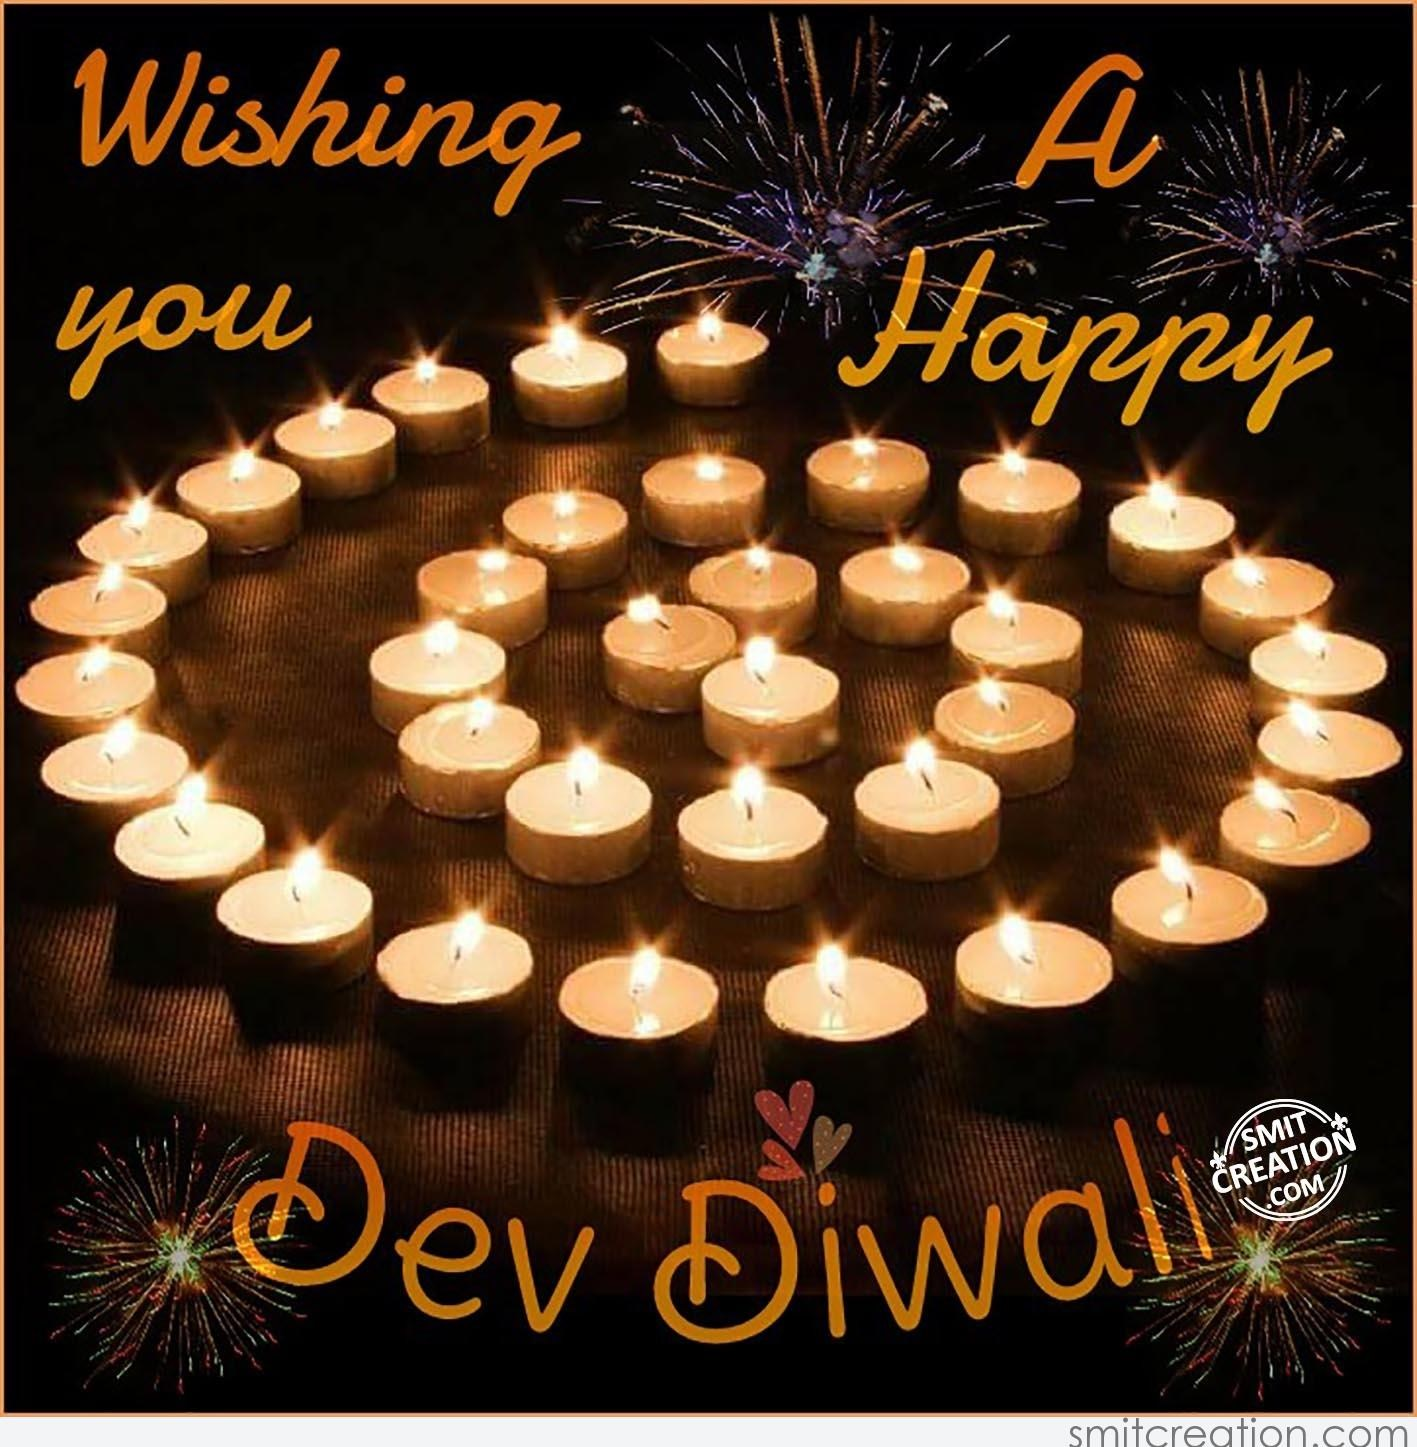 Dev Diwali Pictures And Graphics Smitcreation